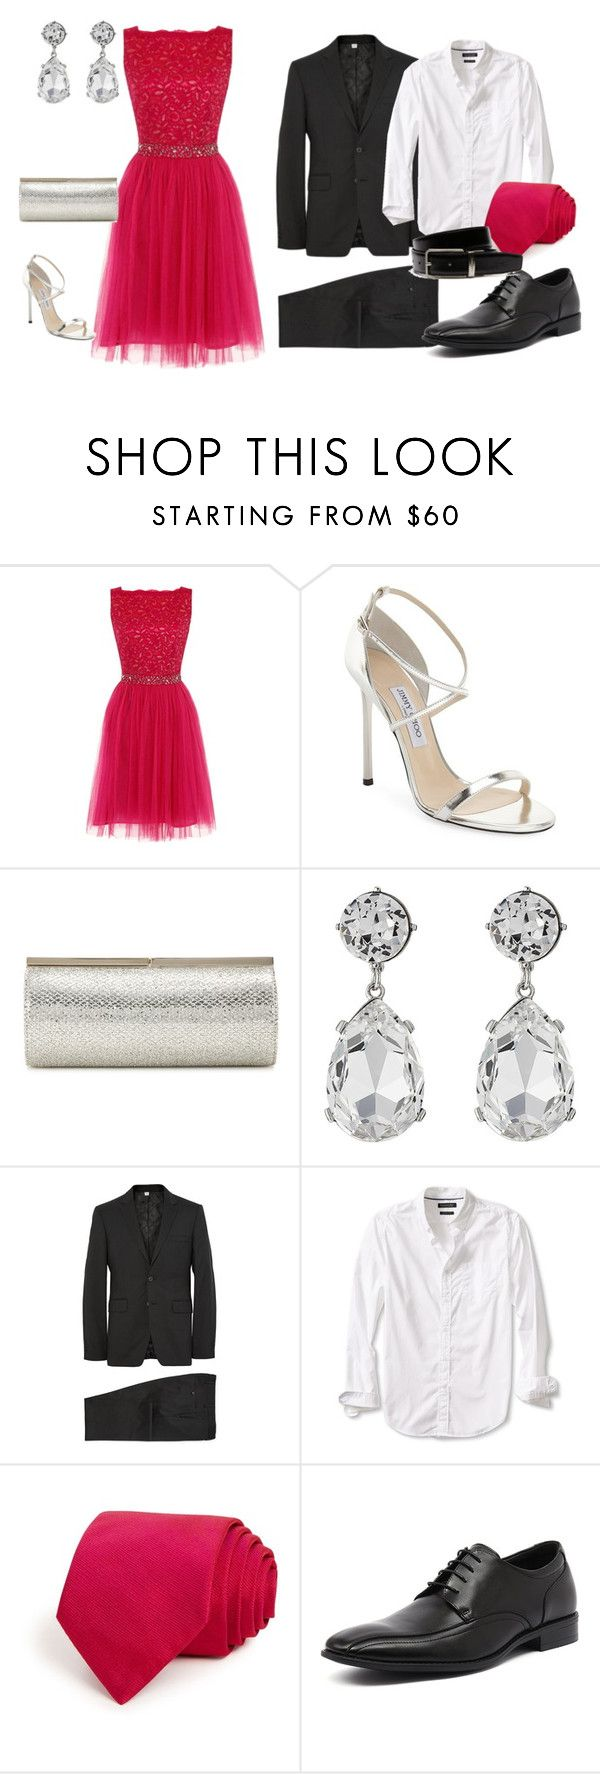 """Untitled #213"" by frupapp on Polyvore featuring Dorothy Perkins, Jimmy Choo, Kenneth Jay Lane, Burberry, Banana Republic, Ted Baker, Julius Marlow and Lacoste"